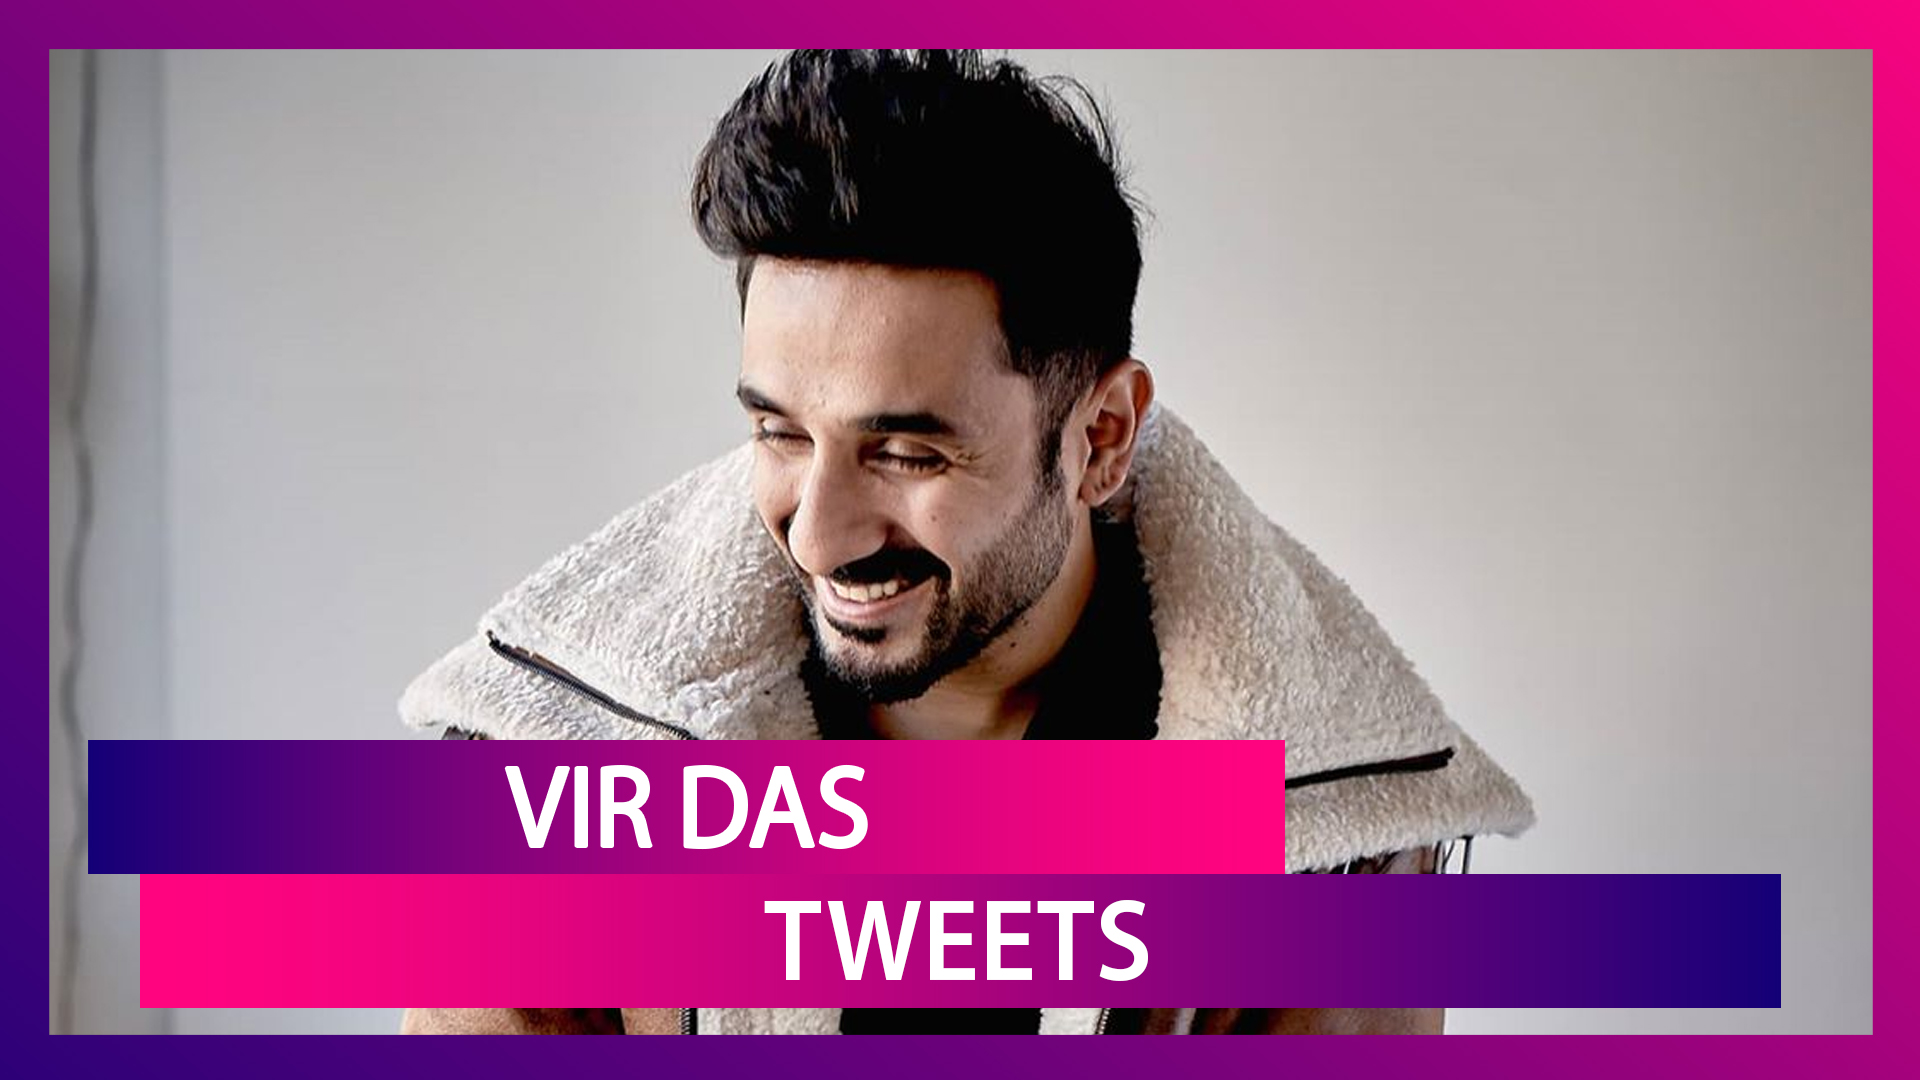 Vir Das, The Witty Comedian: 7 LIT Tweets By Him That Reflect The Current Situation!